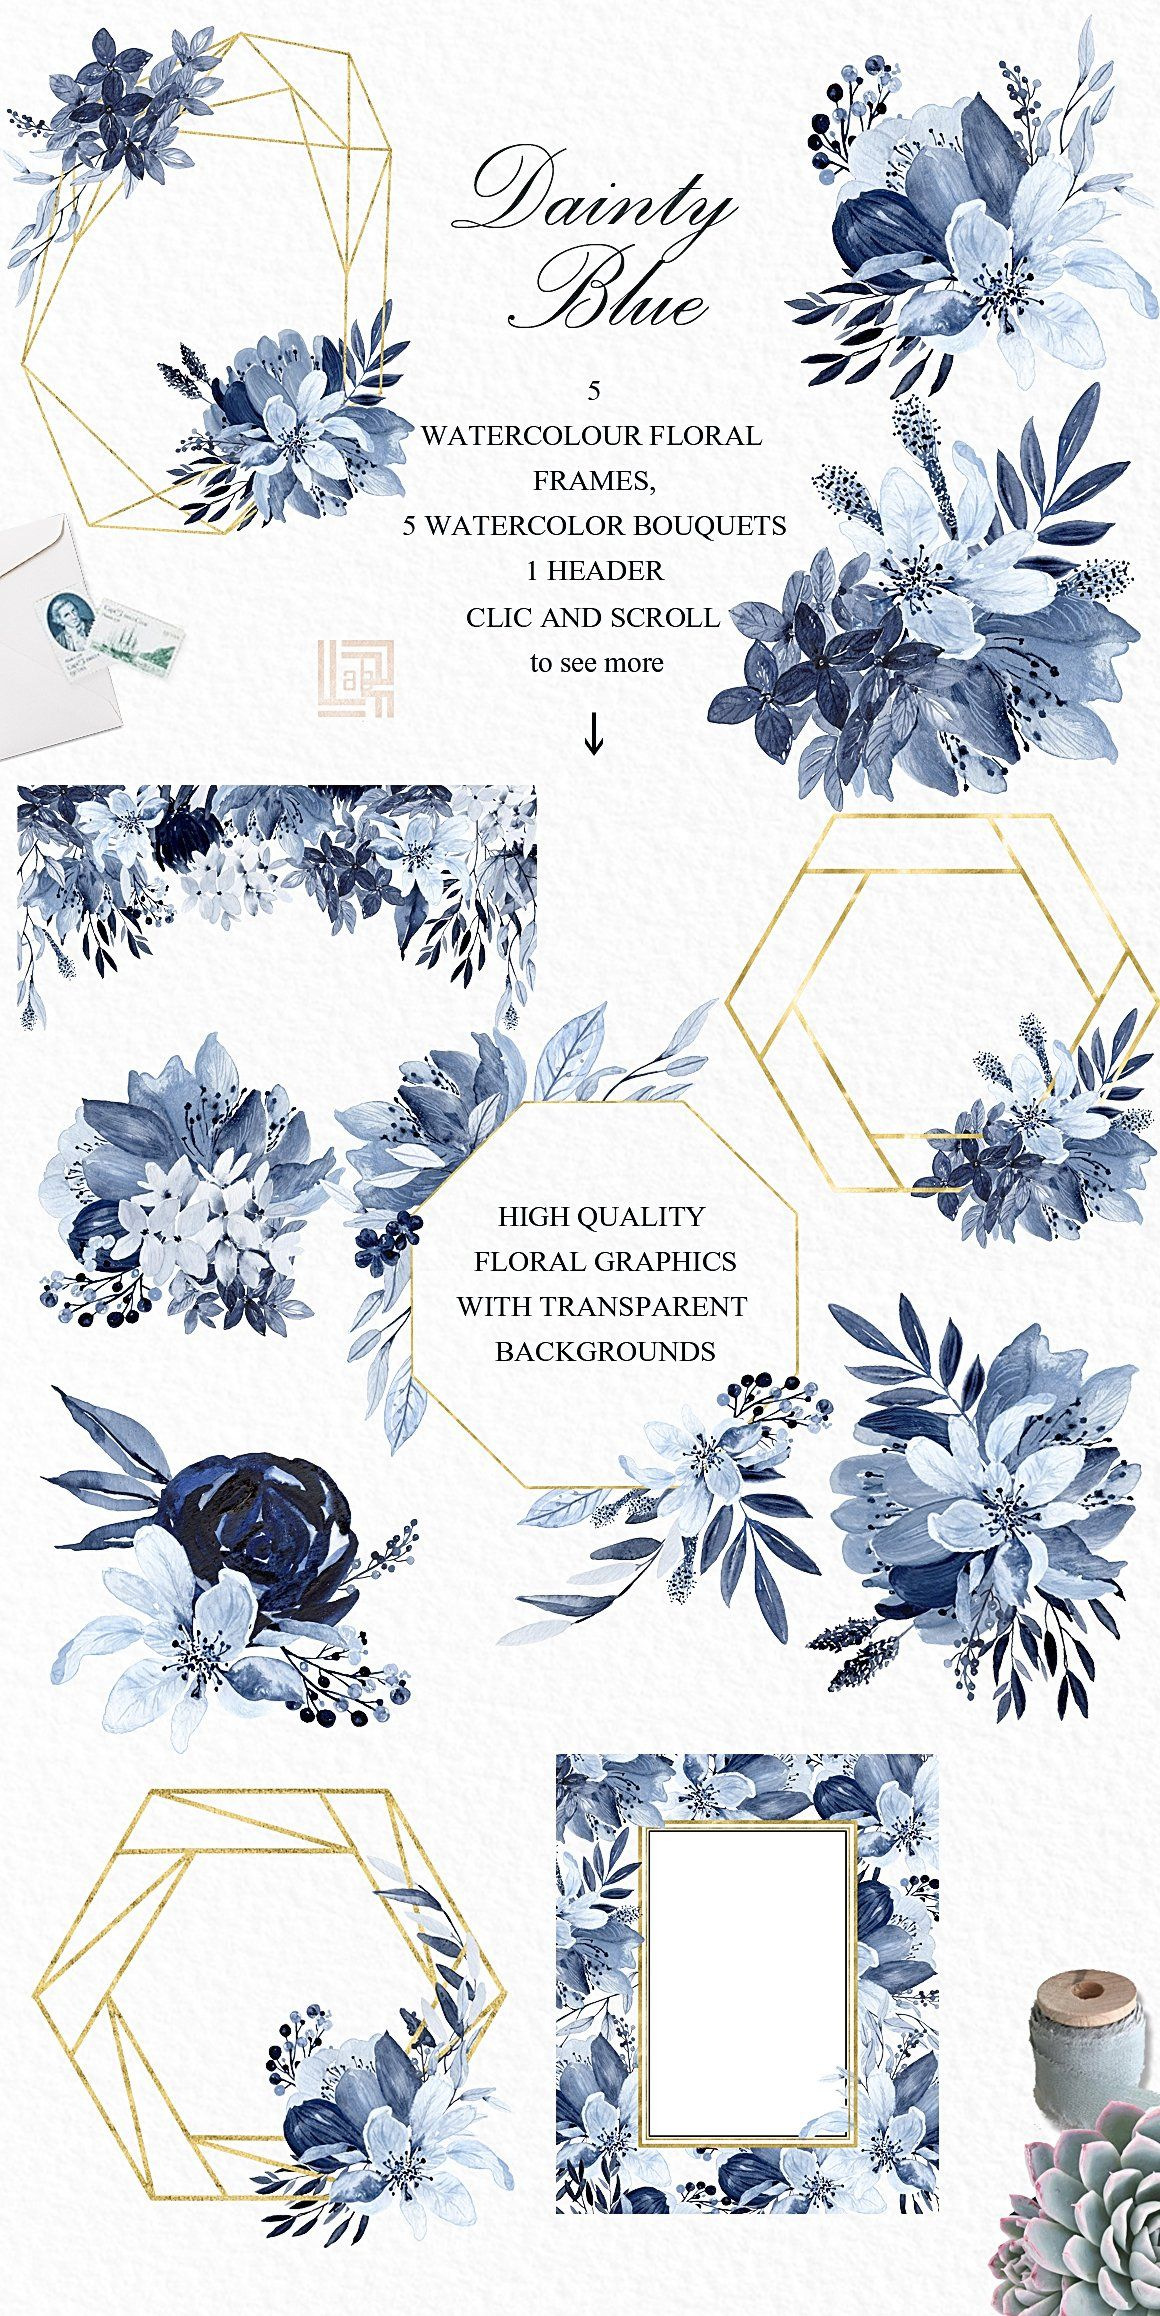 Dainty Blue Navy Blue Flowers Blueflowersdainty Affiliate